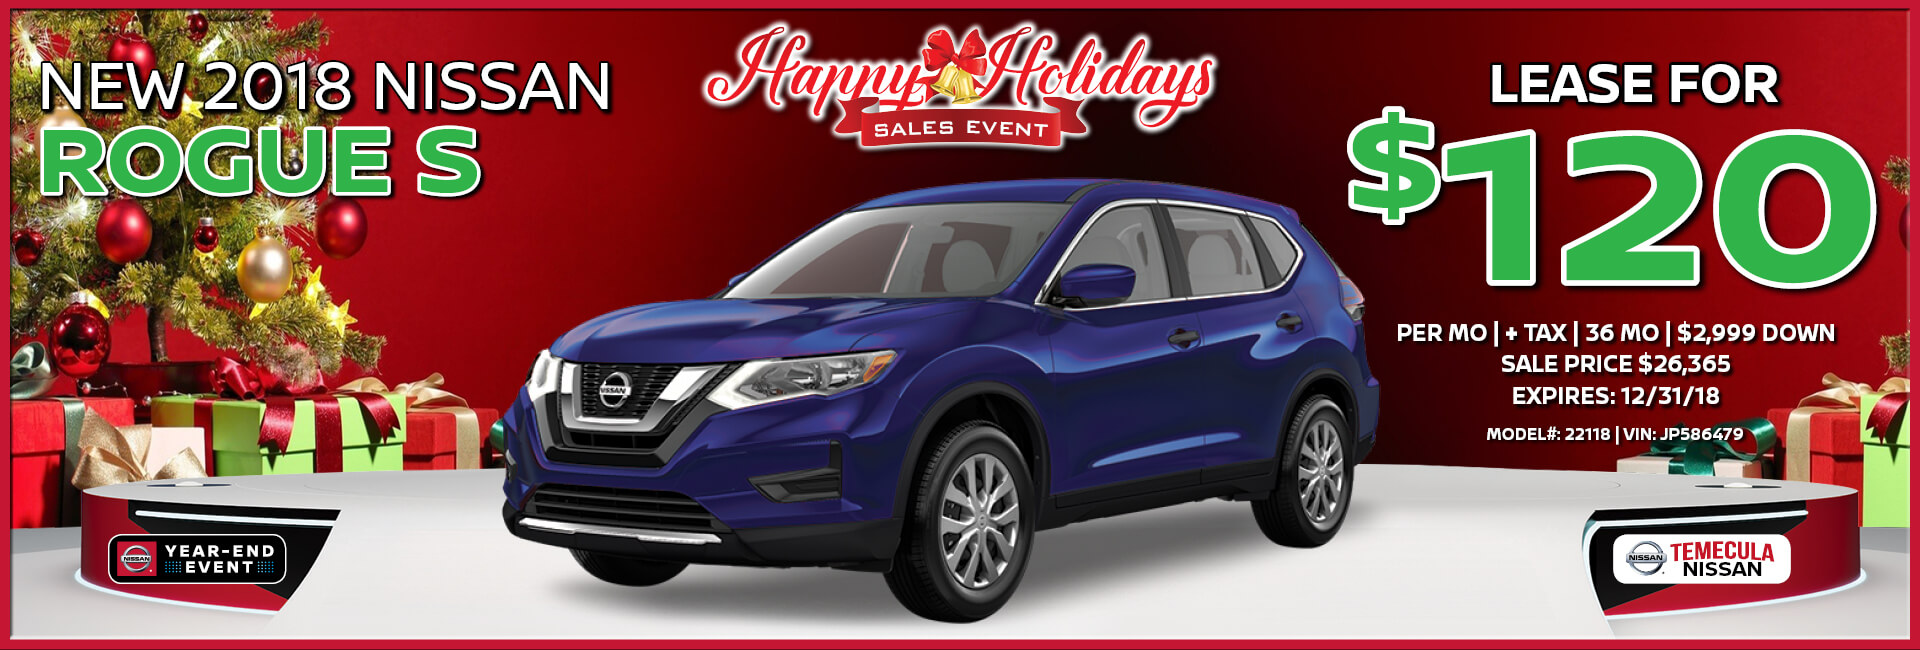 Nissan Rogue $120 Lease